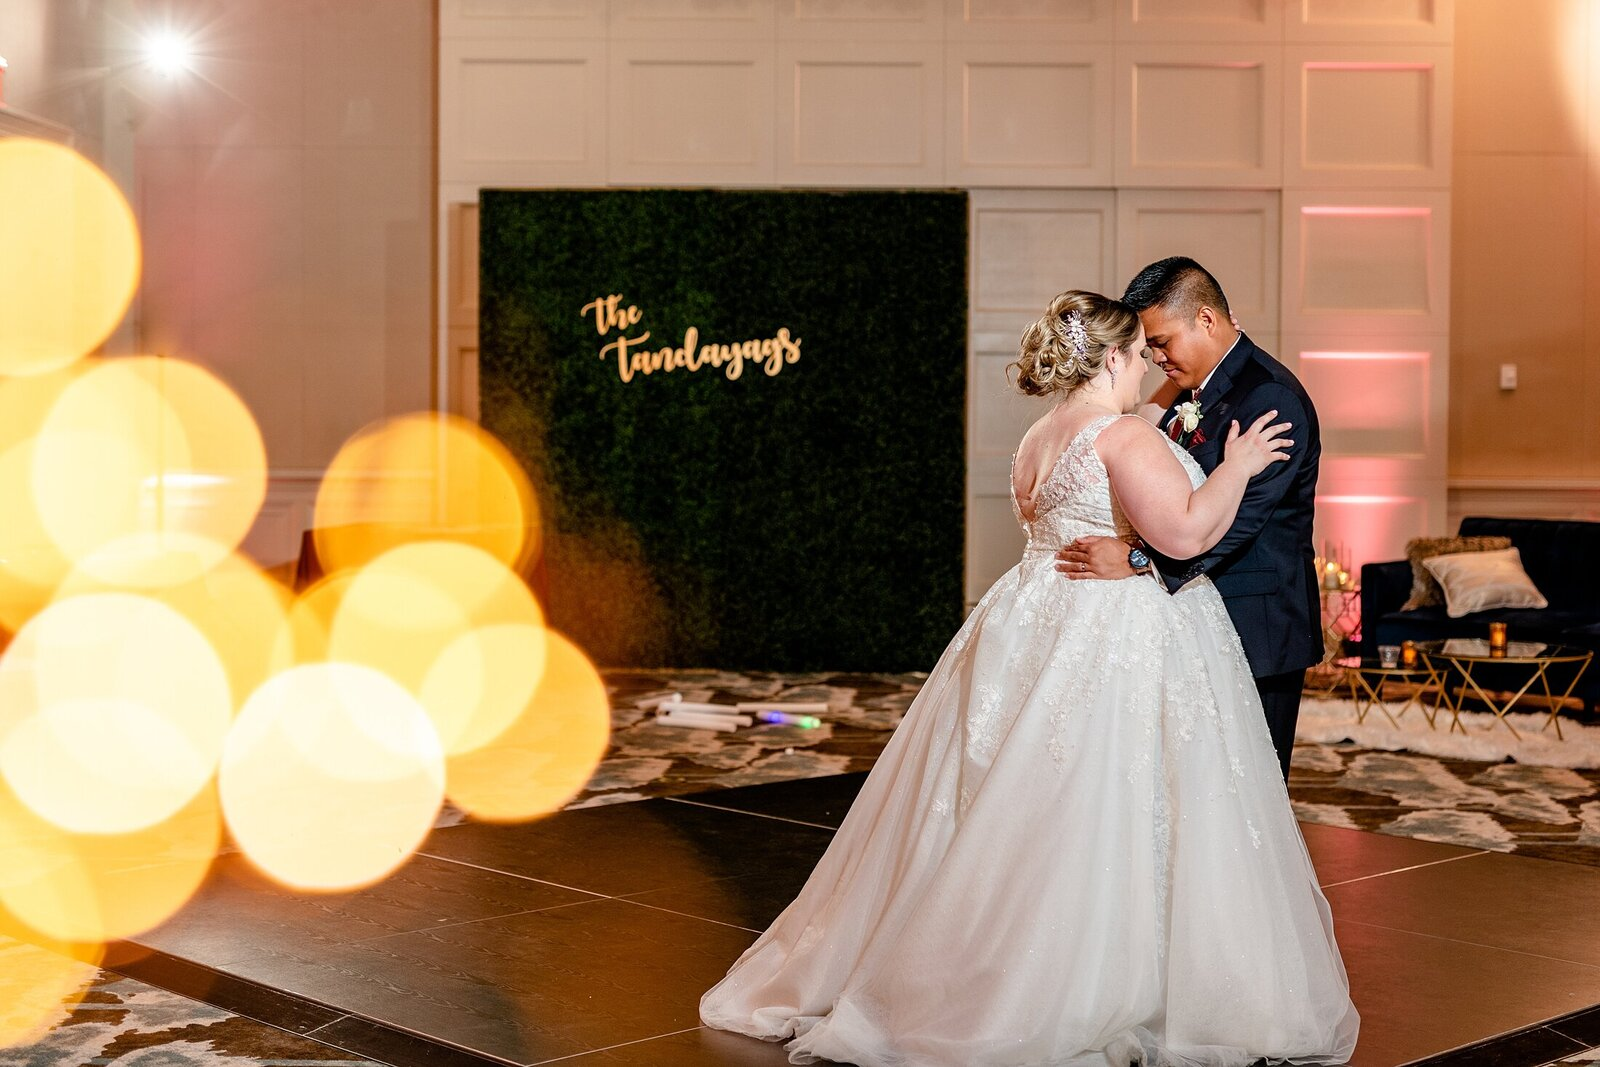 Bride and Groom private last dance | Four Seasons Wedding | Chynna Pacheco Photography